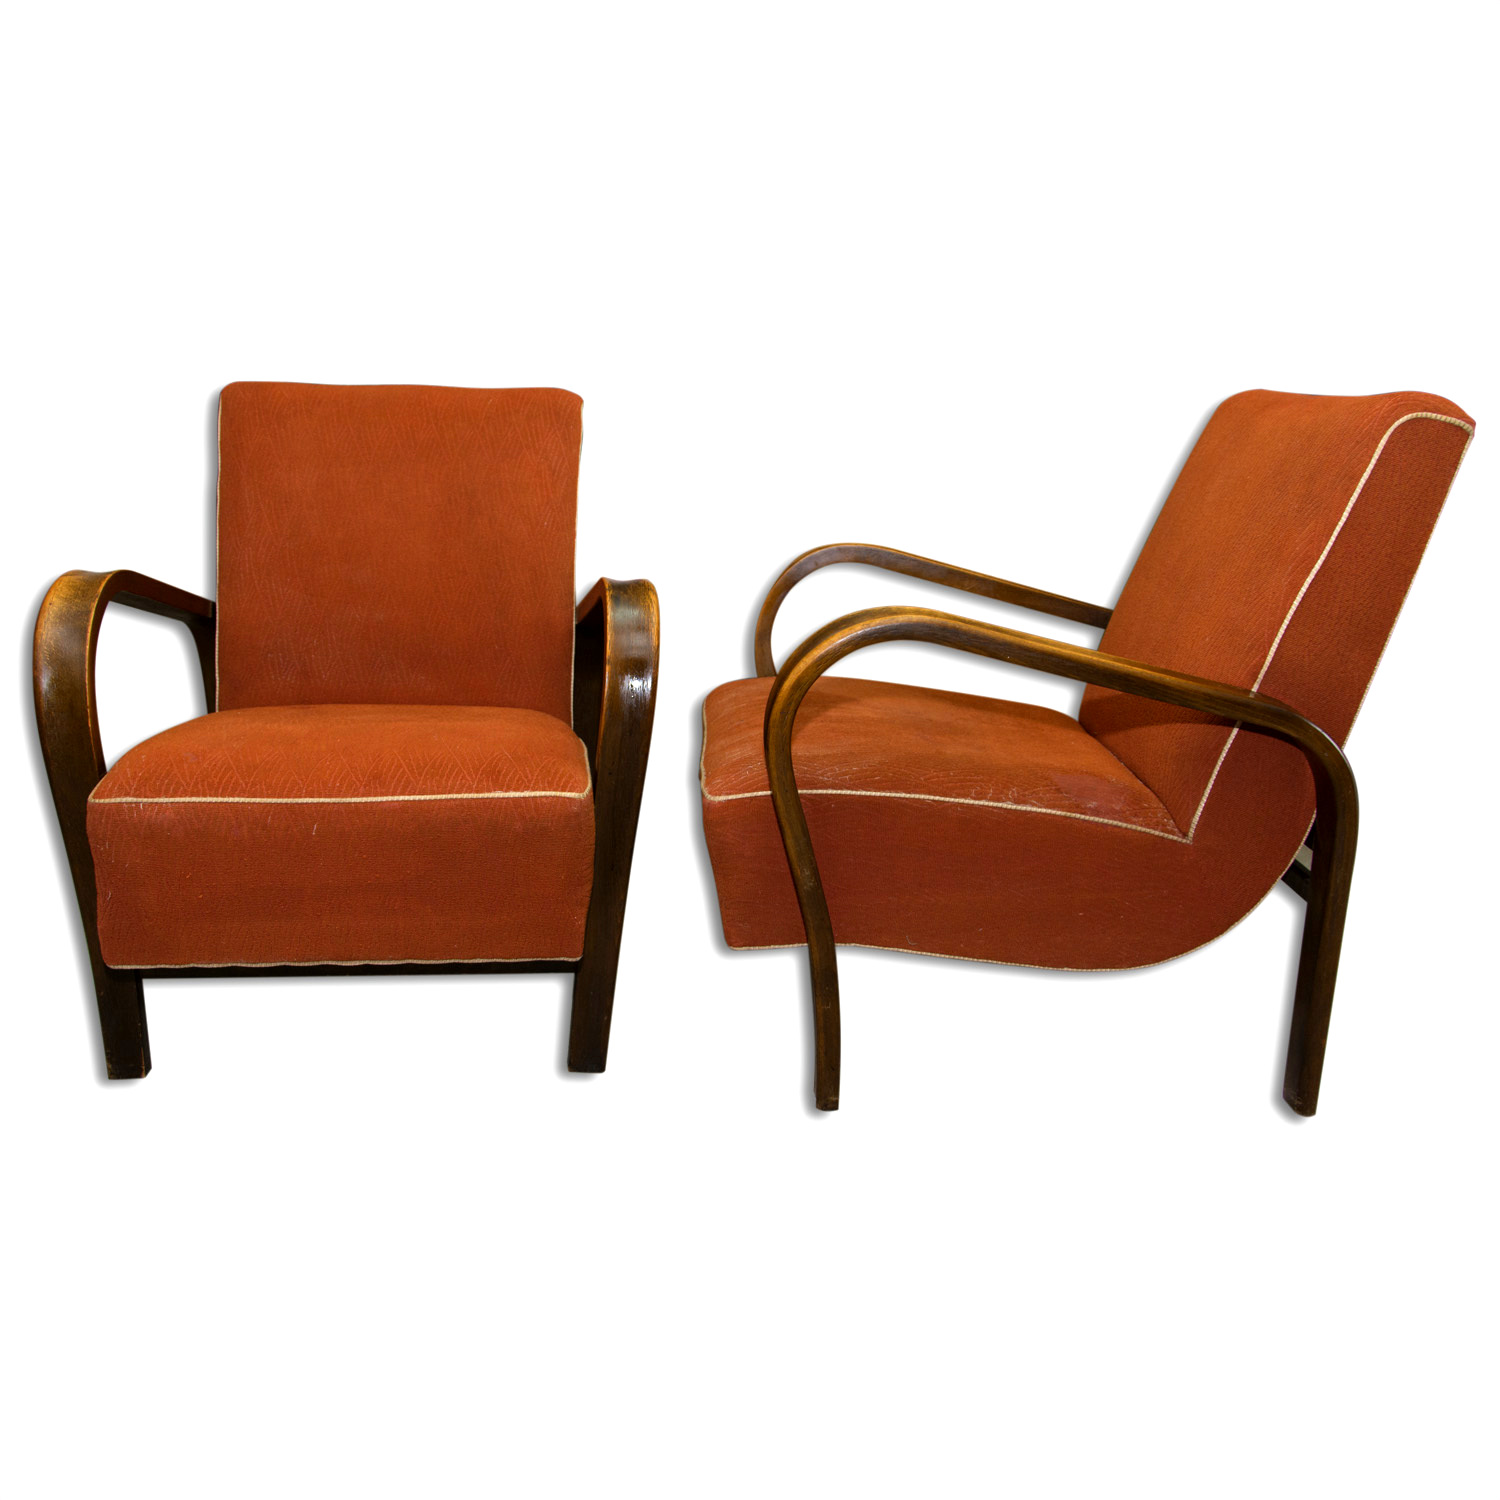 Magnificent Jindrich Halabala Pair Of Art Deco Bentwood Armchairs 1940 Spiritservingveterans Wood Chair Design Ideas Spiritservingveteransorg